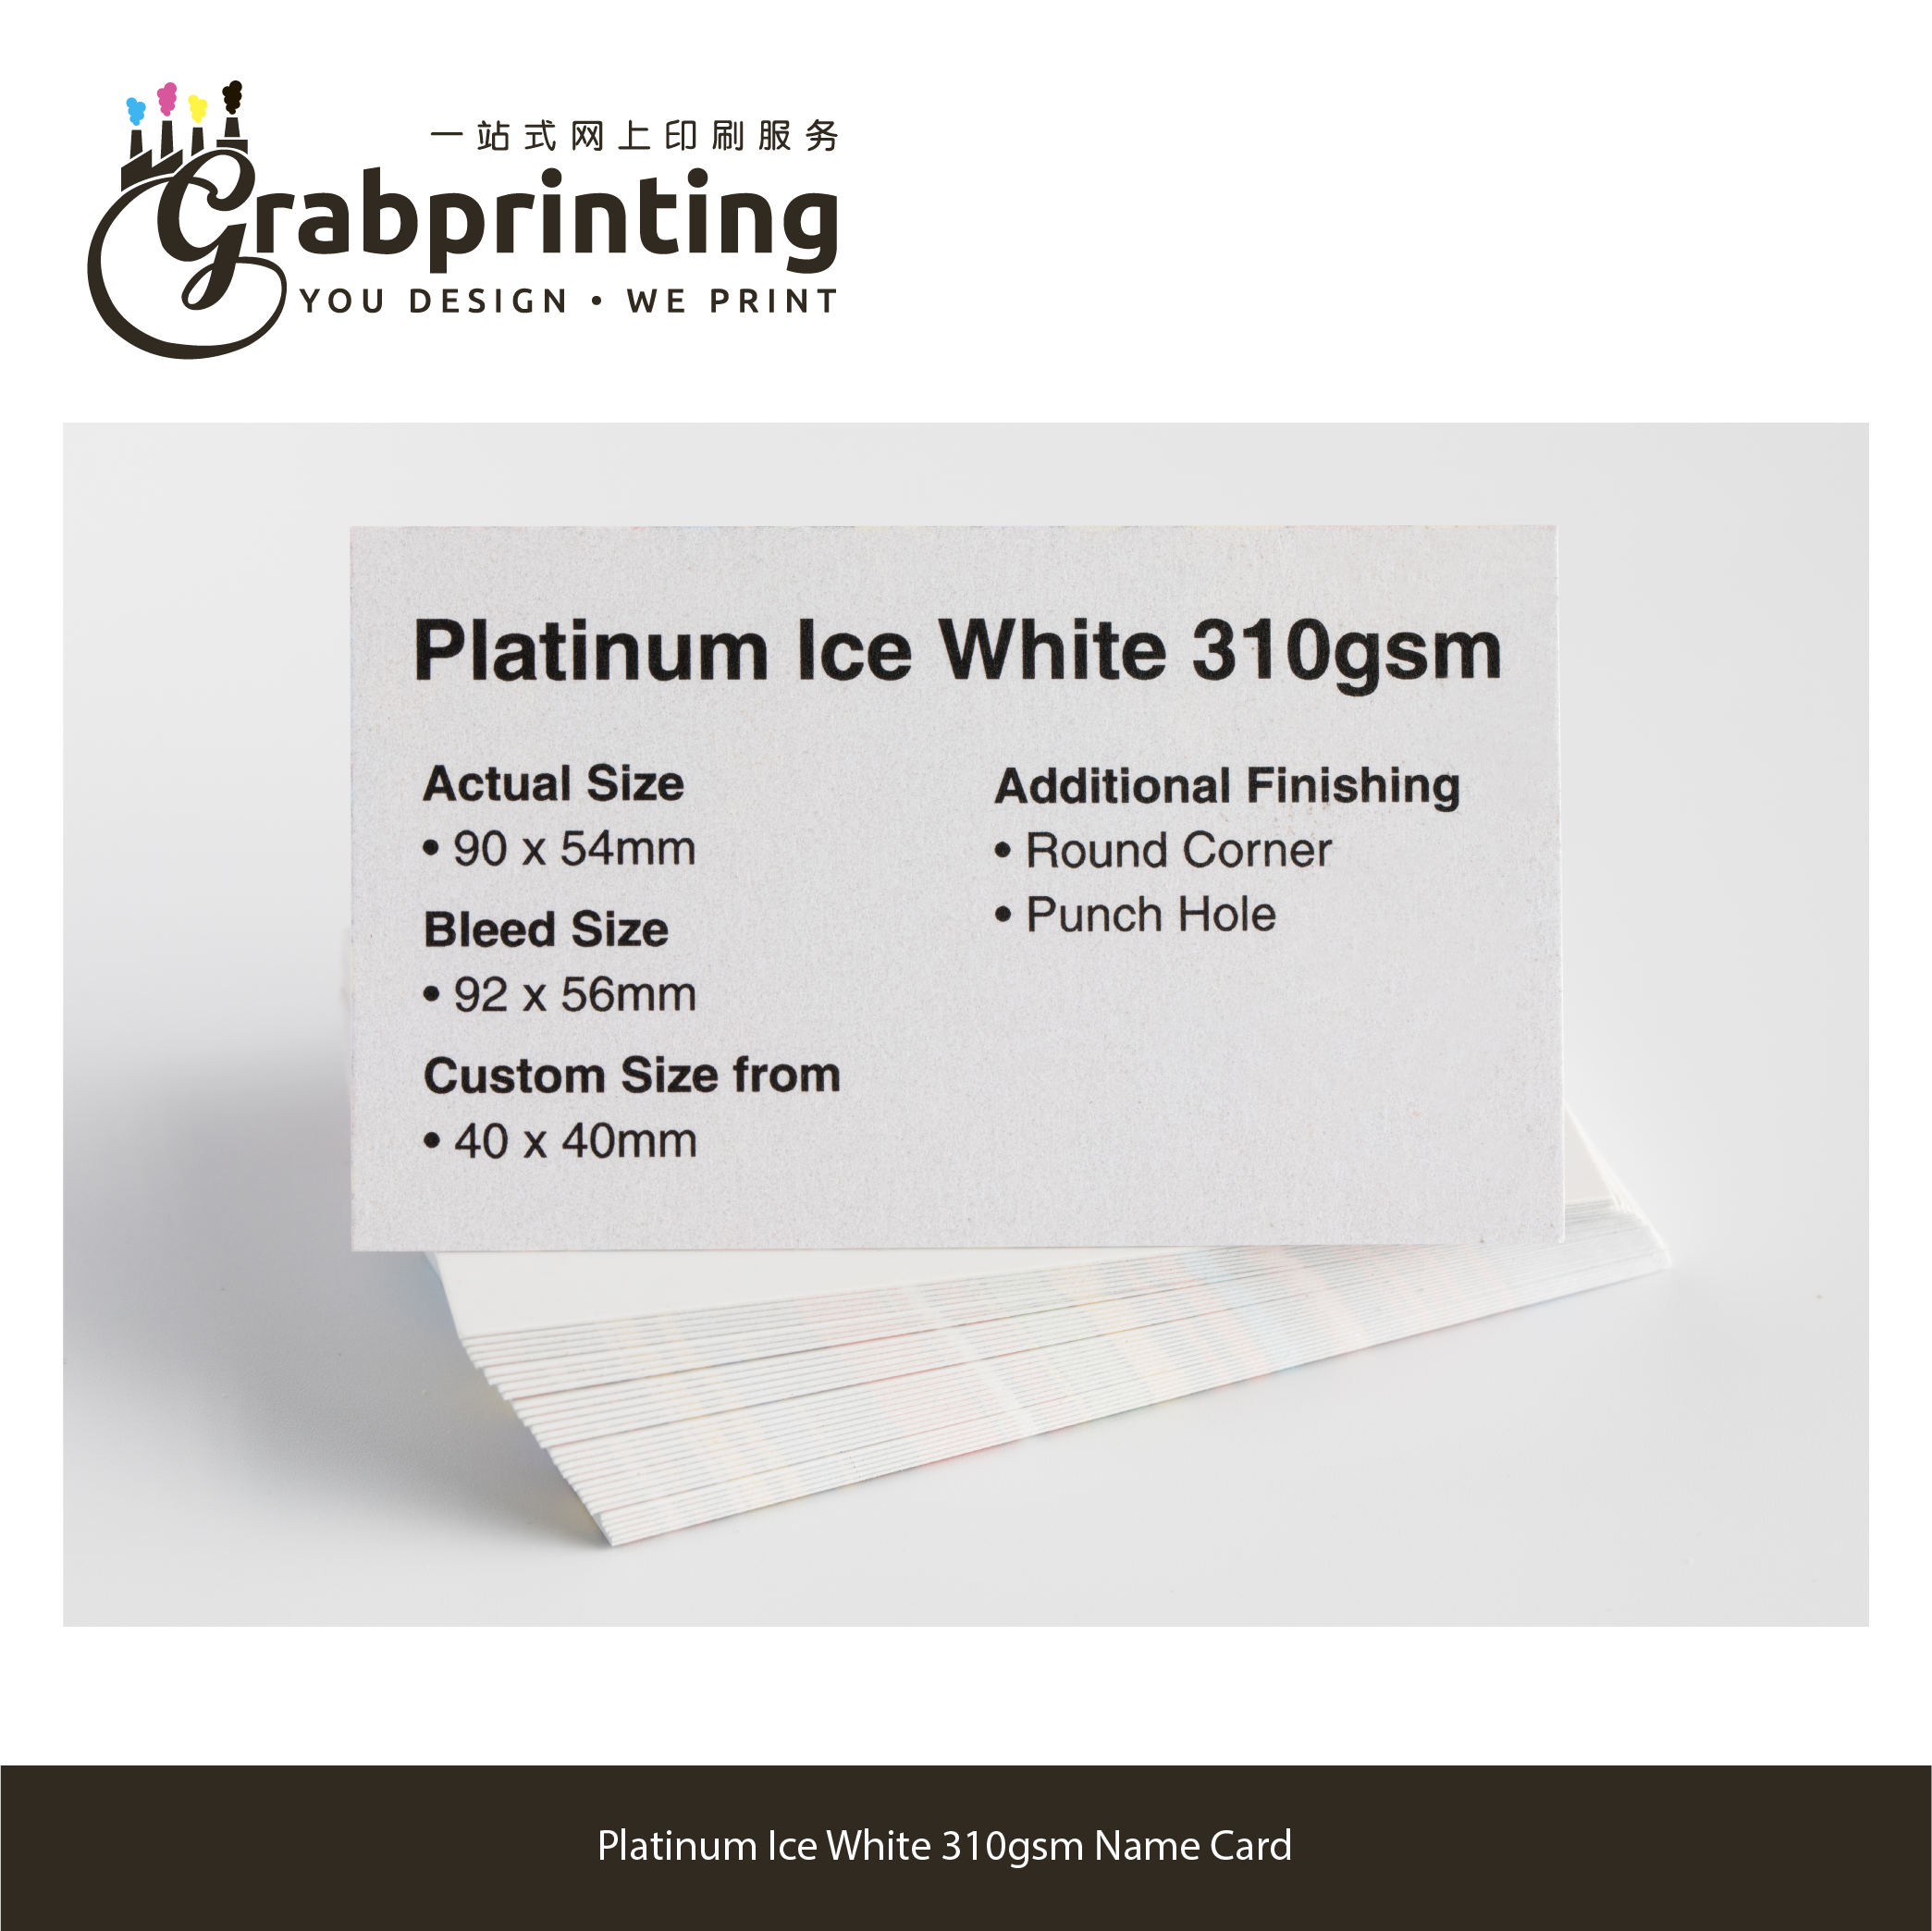 Name Card Sample Kit grabprinting 34 Platinum Ice White 310gsm Name Card 501px 501px